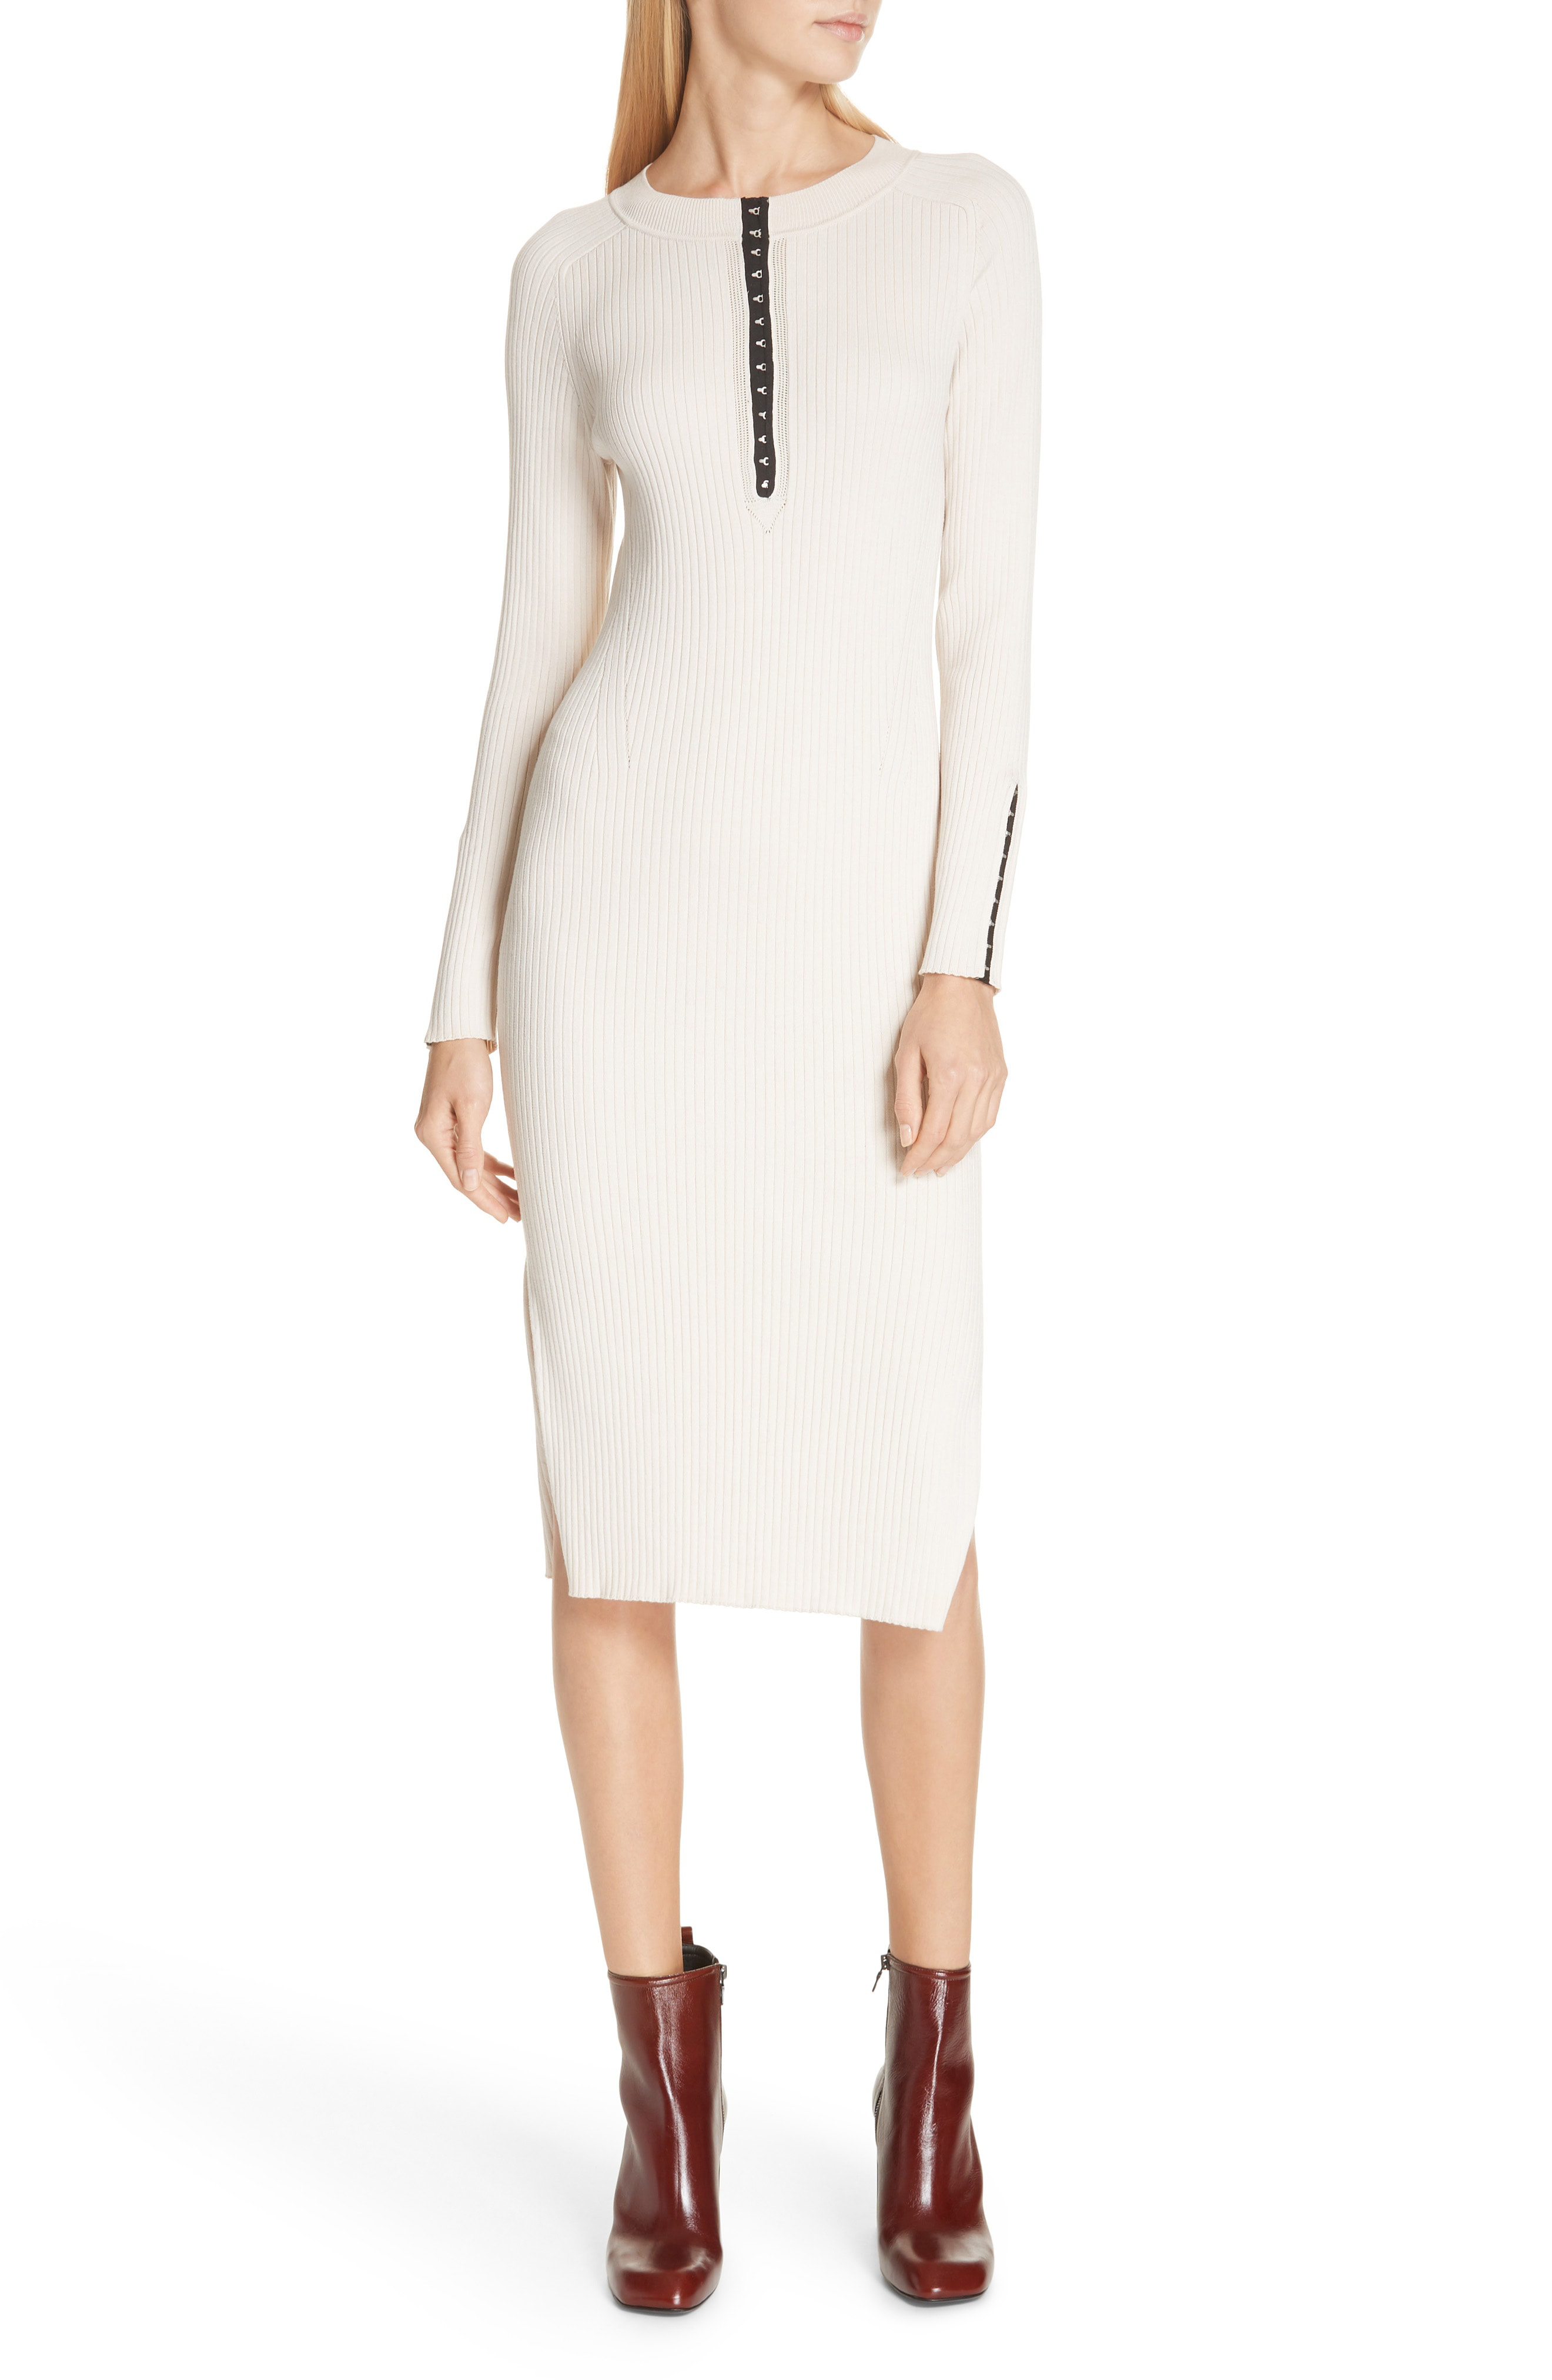 Rag Bone Brynn Rib Knit Dress In